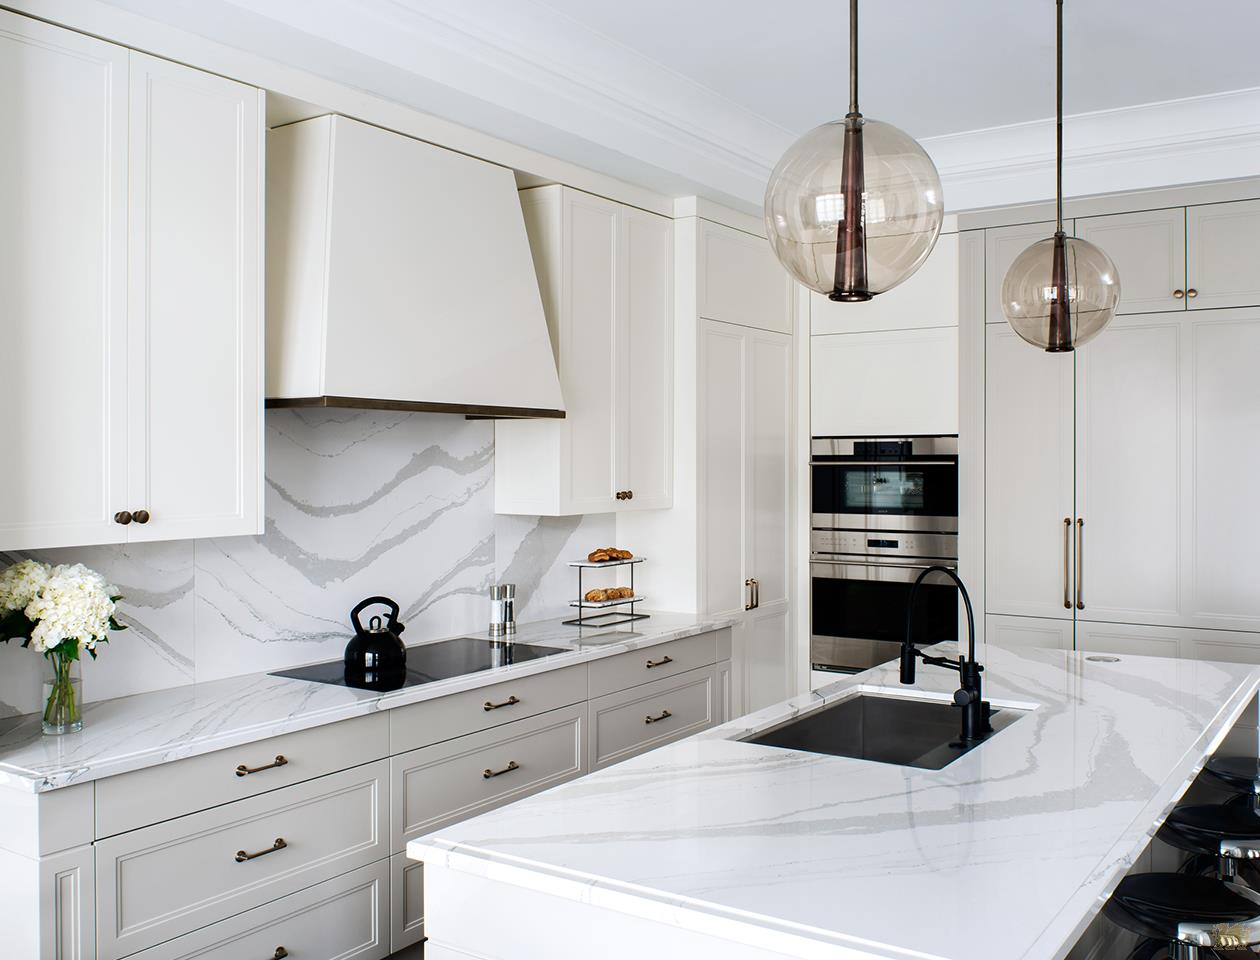 Popular White Quartz Countertops K D Countertops